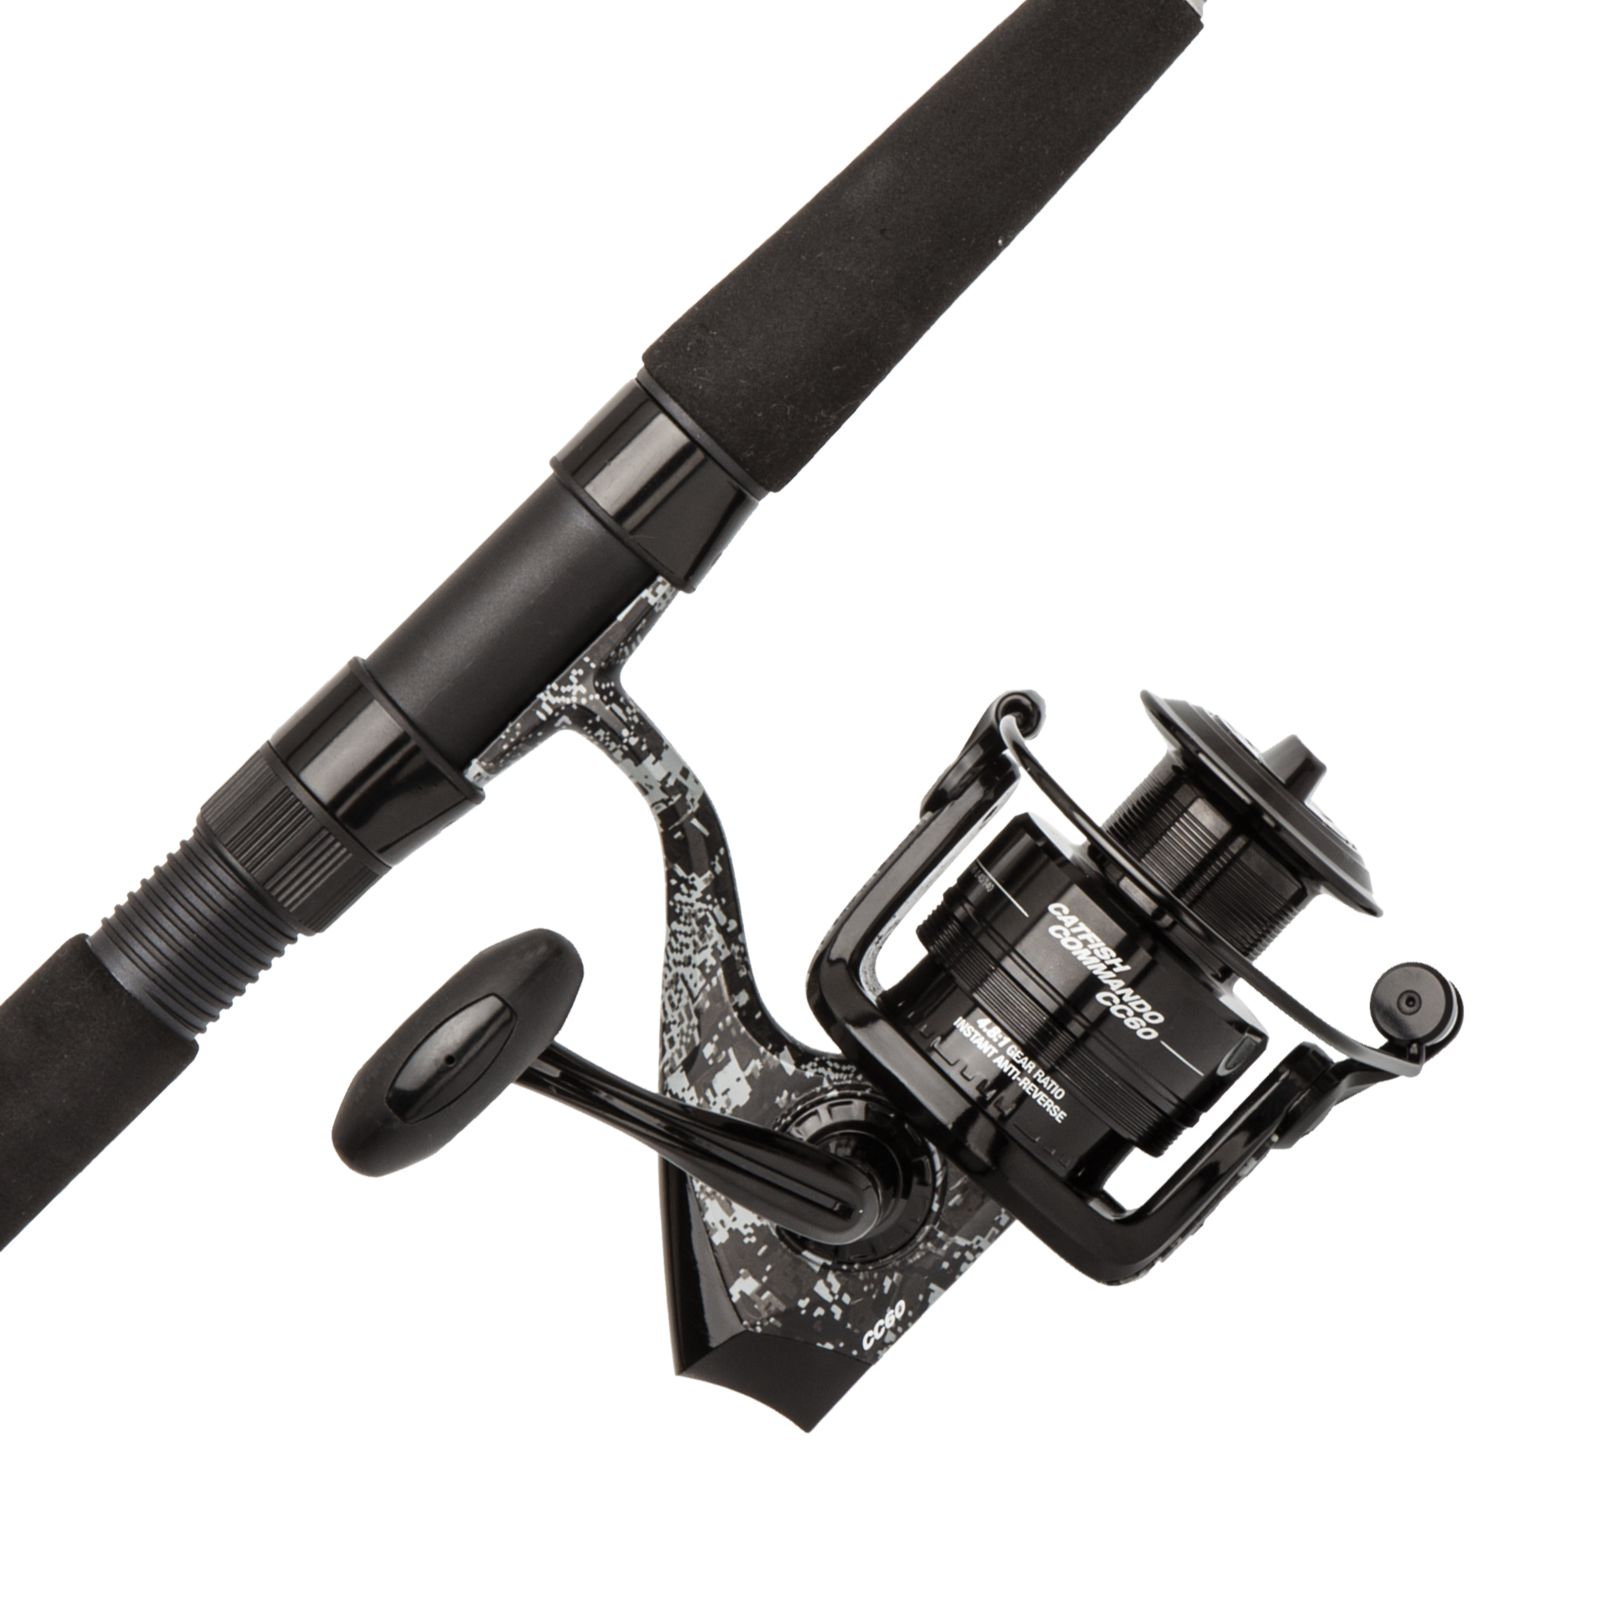 Abu garcia catfish commando spin combo maumee tackle for Garcia fishing pole